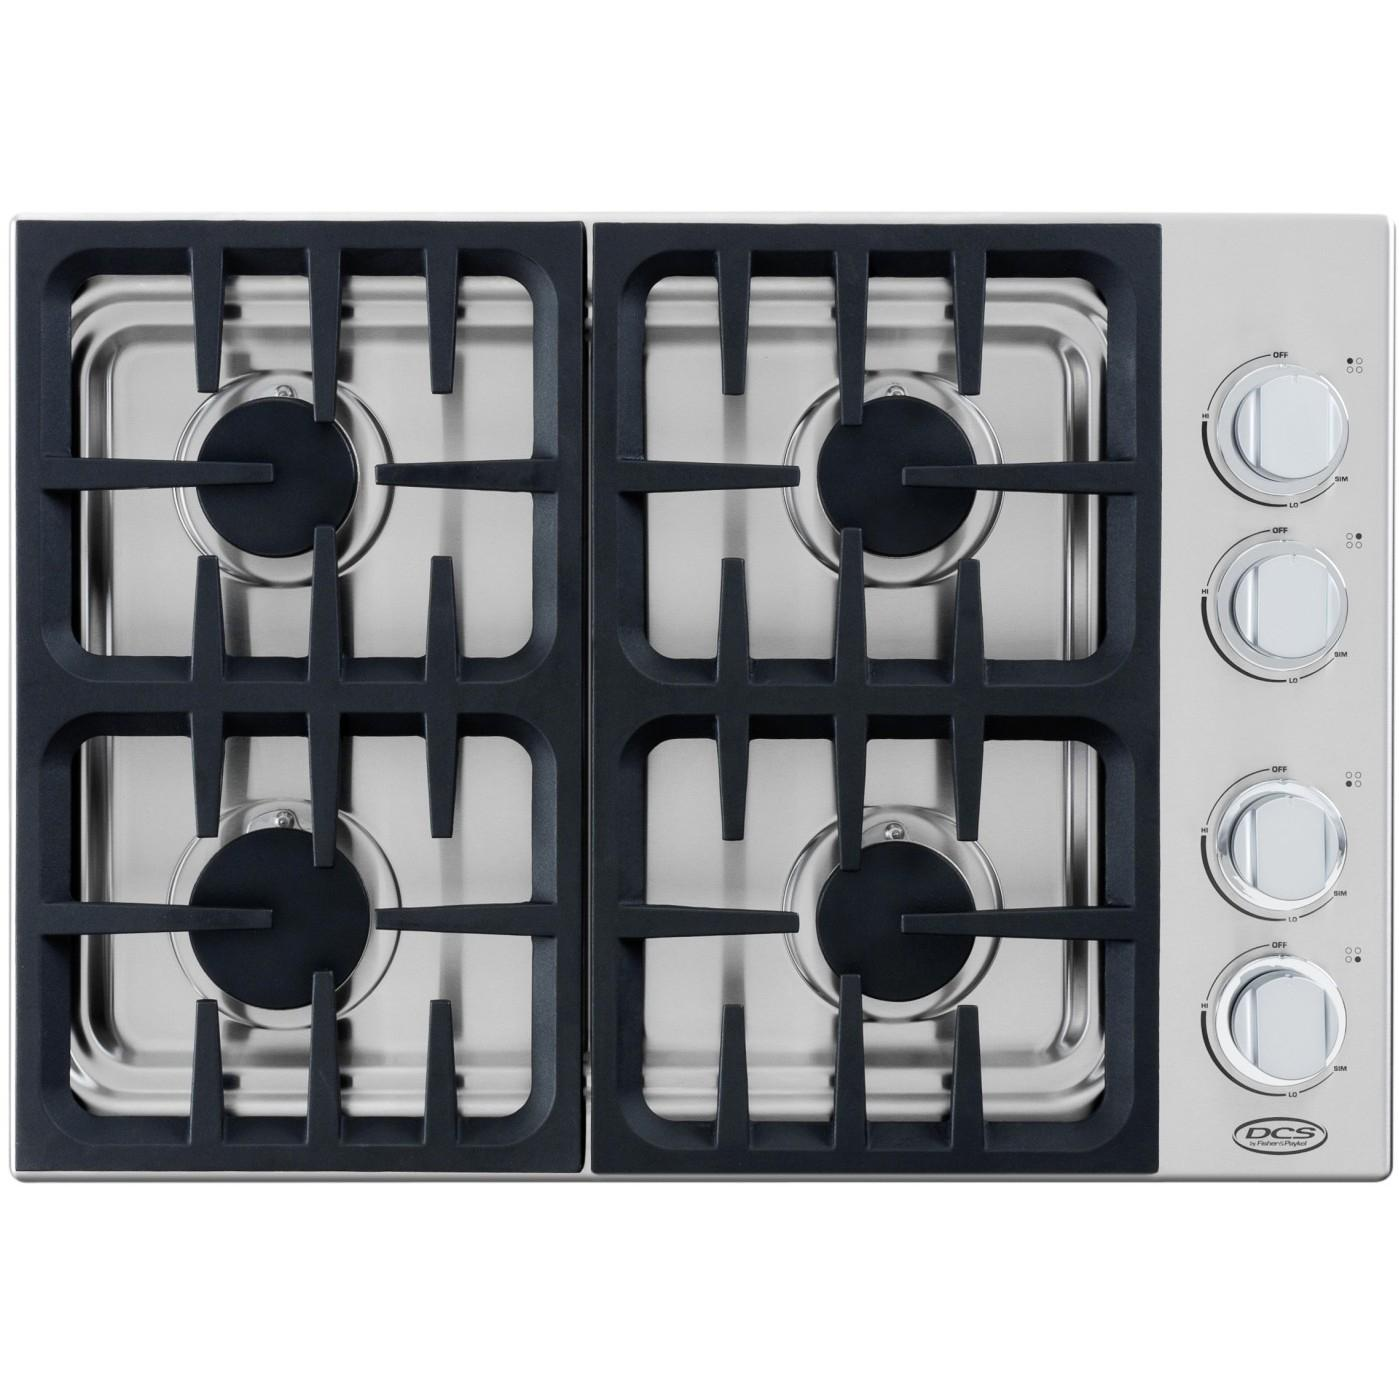 DCS CDU304N 30-Inch Natural Gas Drop-in Cooktop By Fisher Paykel